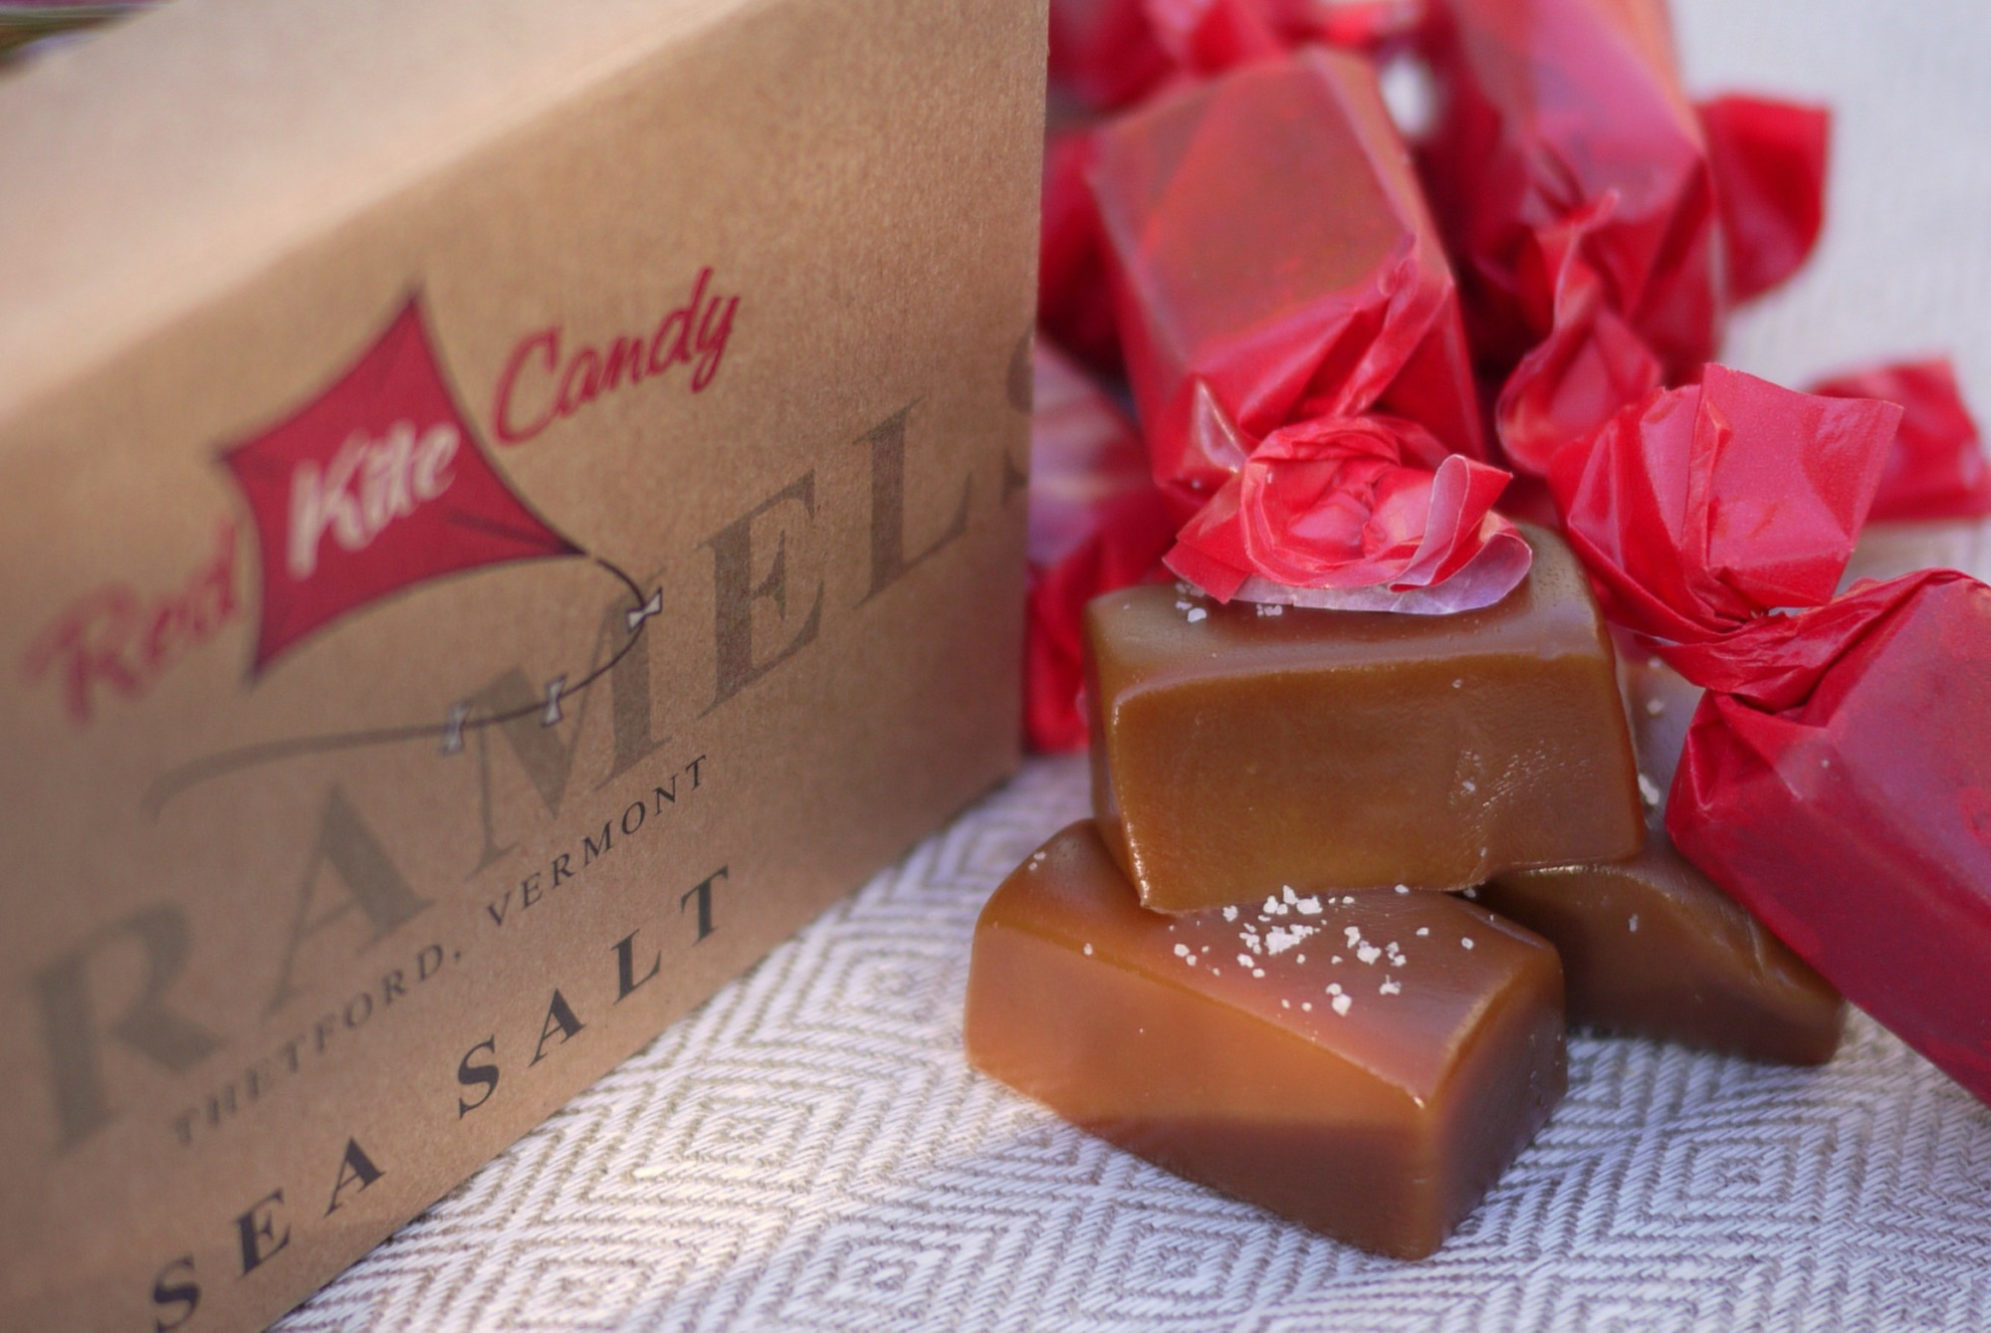 f1926bfbf734c Homemade candy is something to be truly treasured – caramel in particular.  Our mouths water at the thought of the ooey gooey goodness that results  from the ...